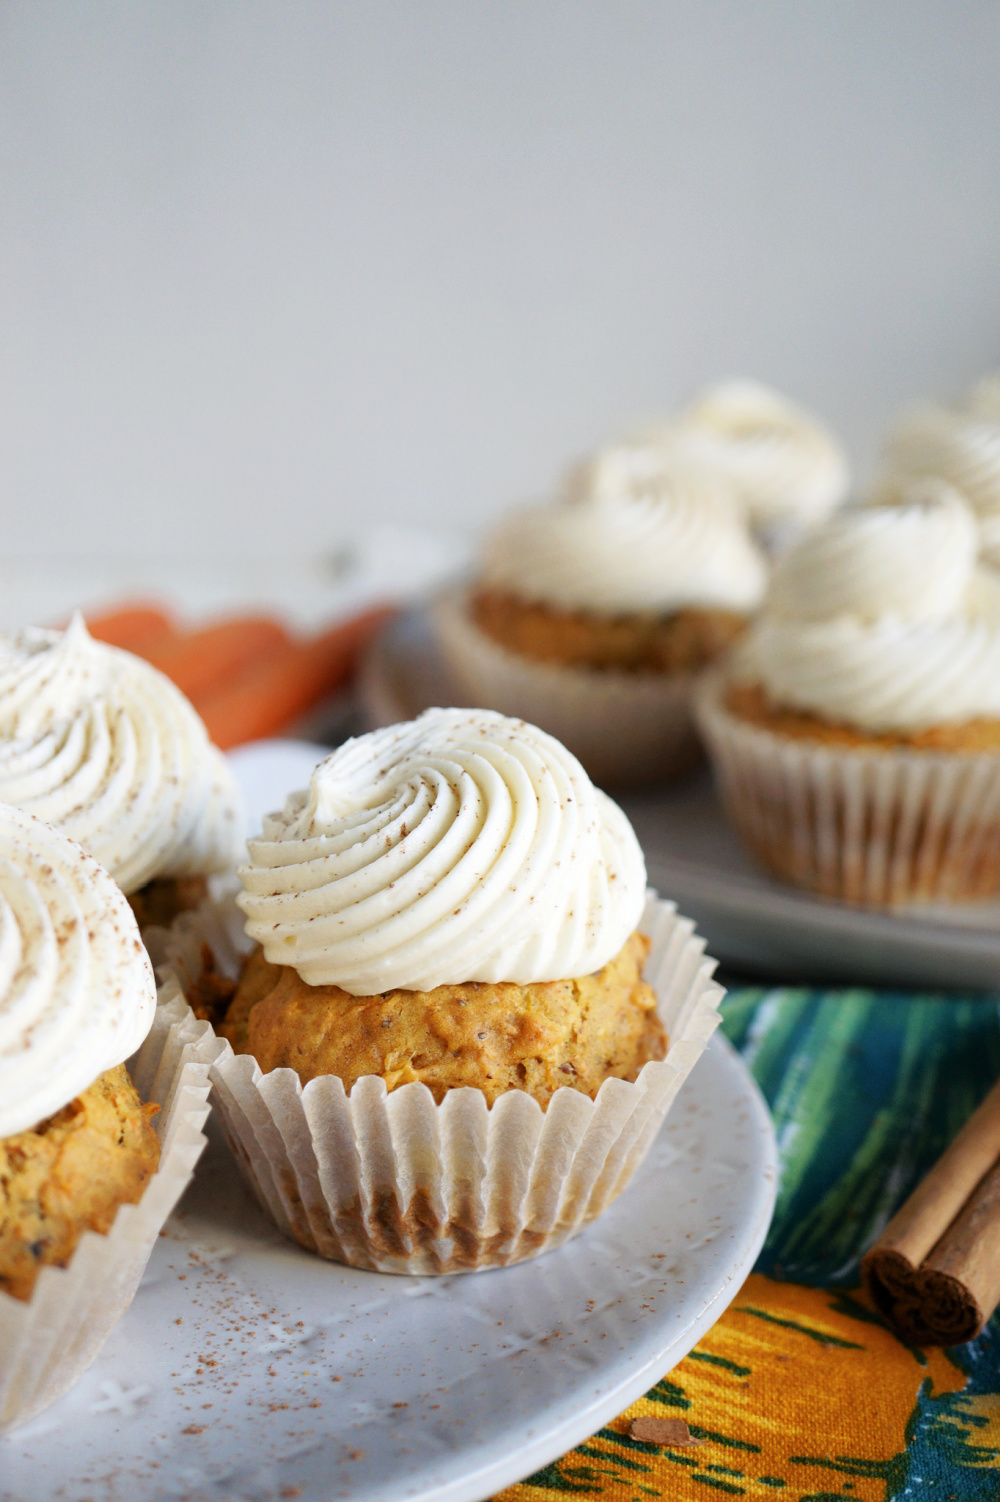 carrot cake cupcakes with swirled white frosting